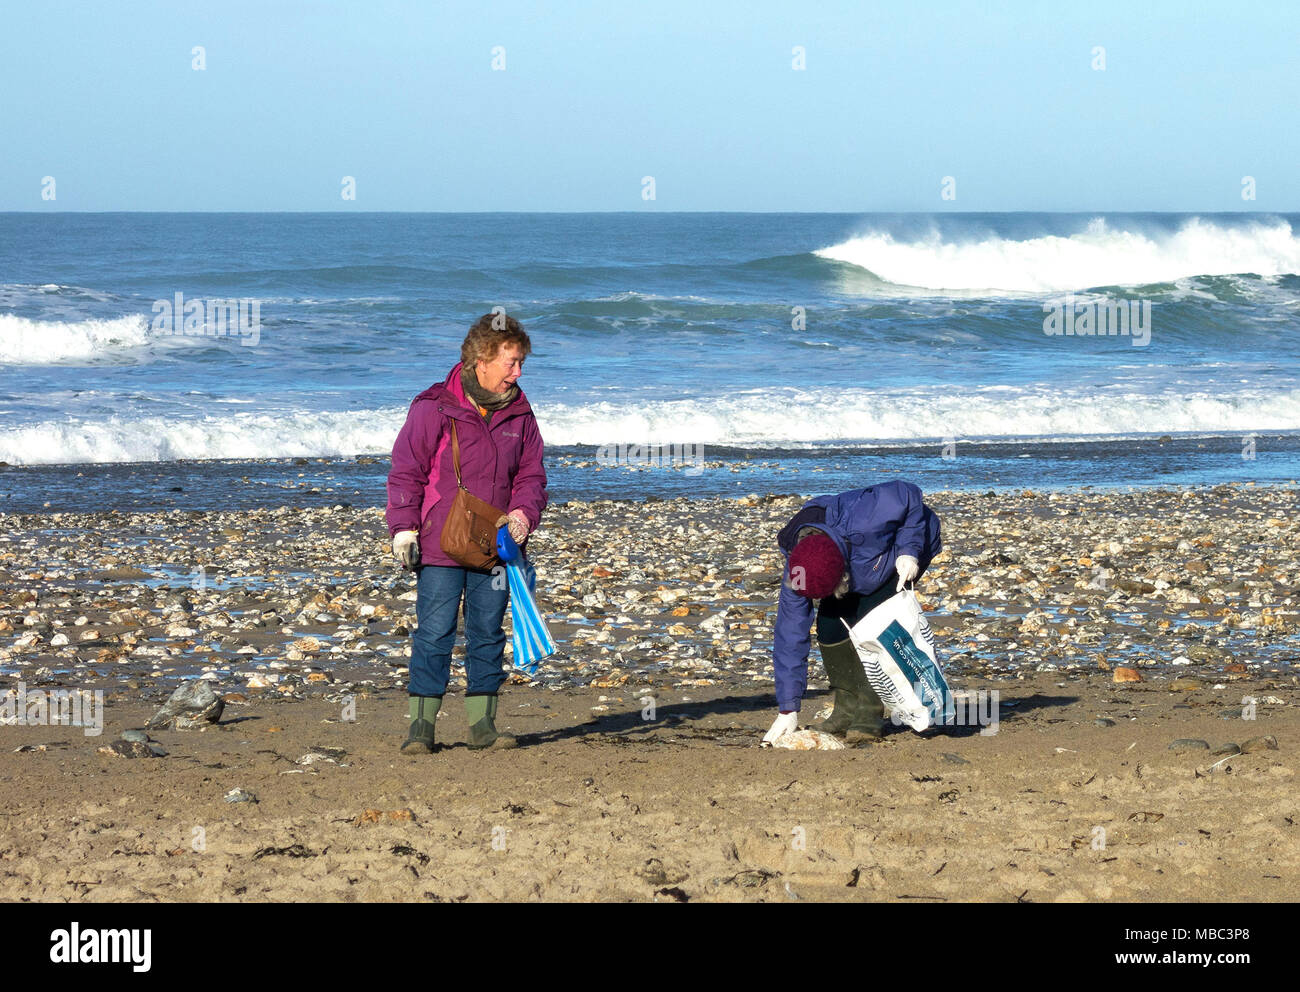 two elderley women collecting waste plastic of the  beach in porthtowan, cornwall, england, britain, uk. - Stock Image